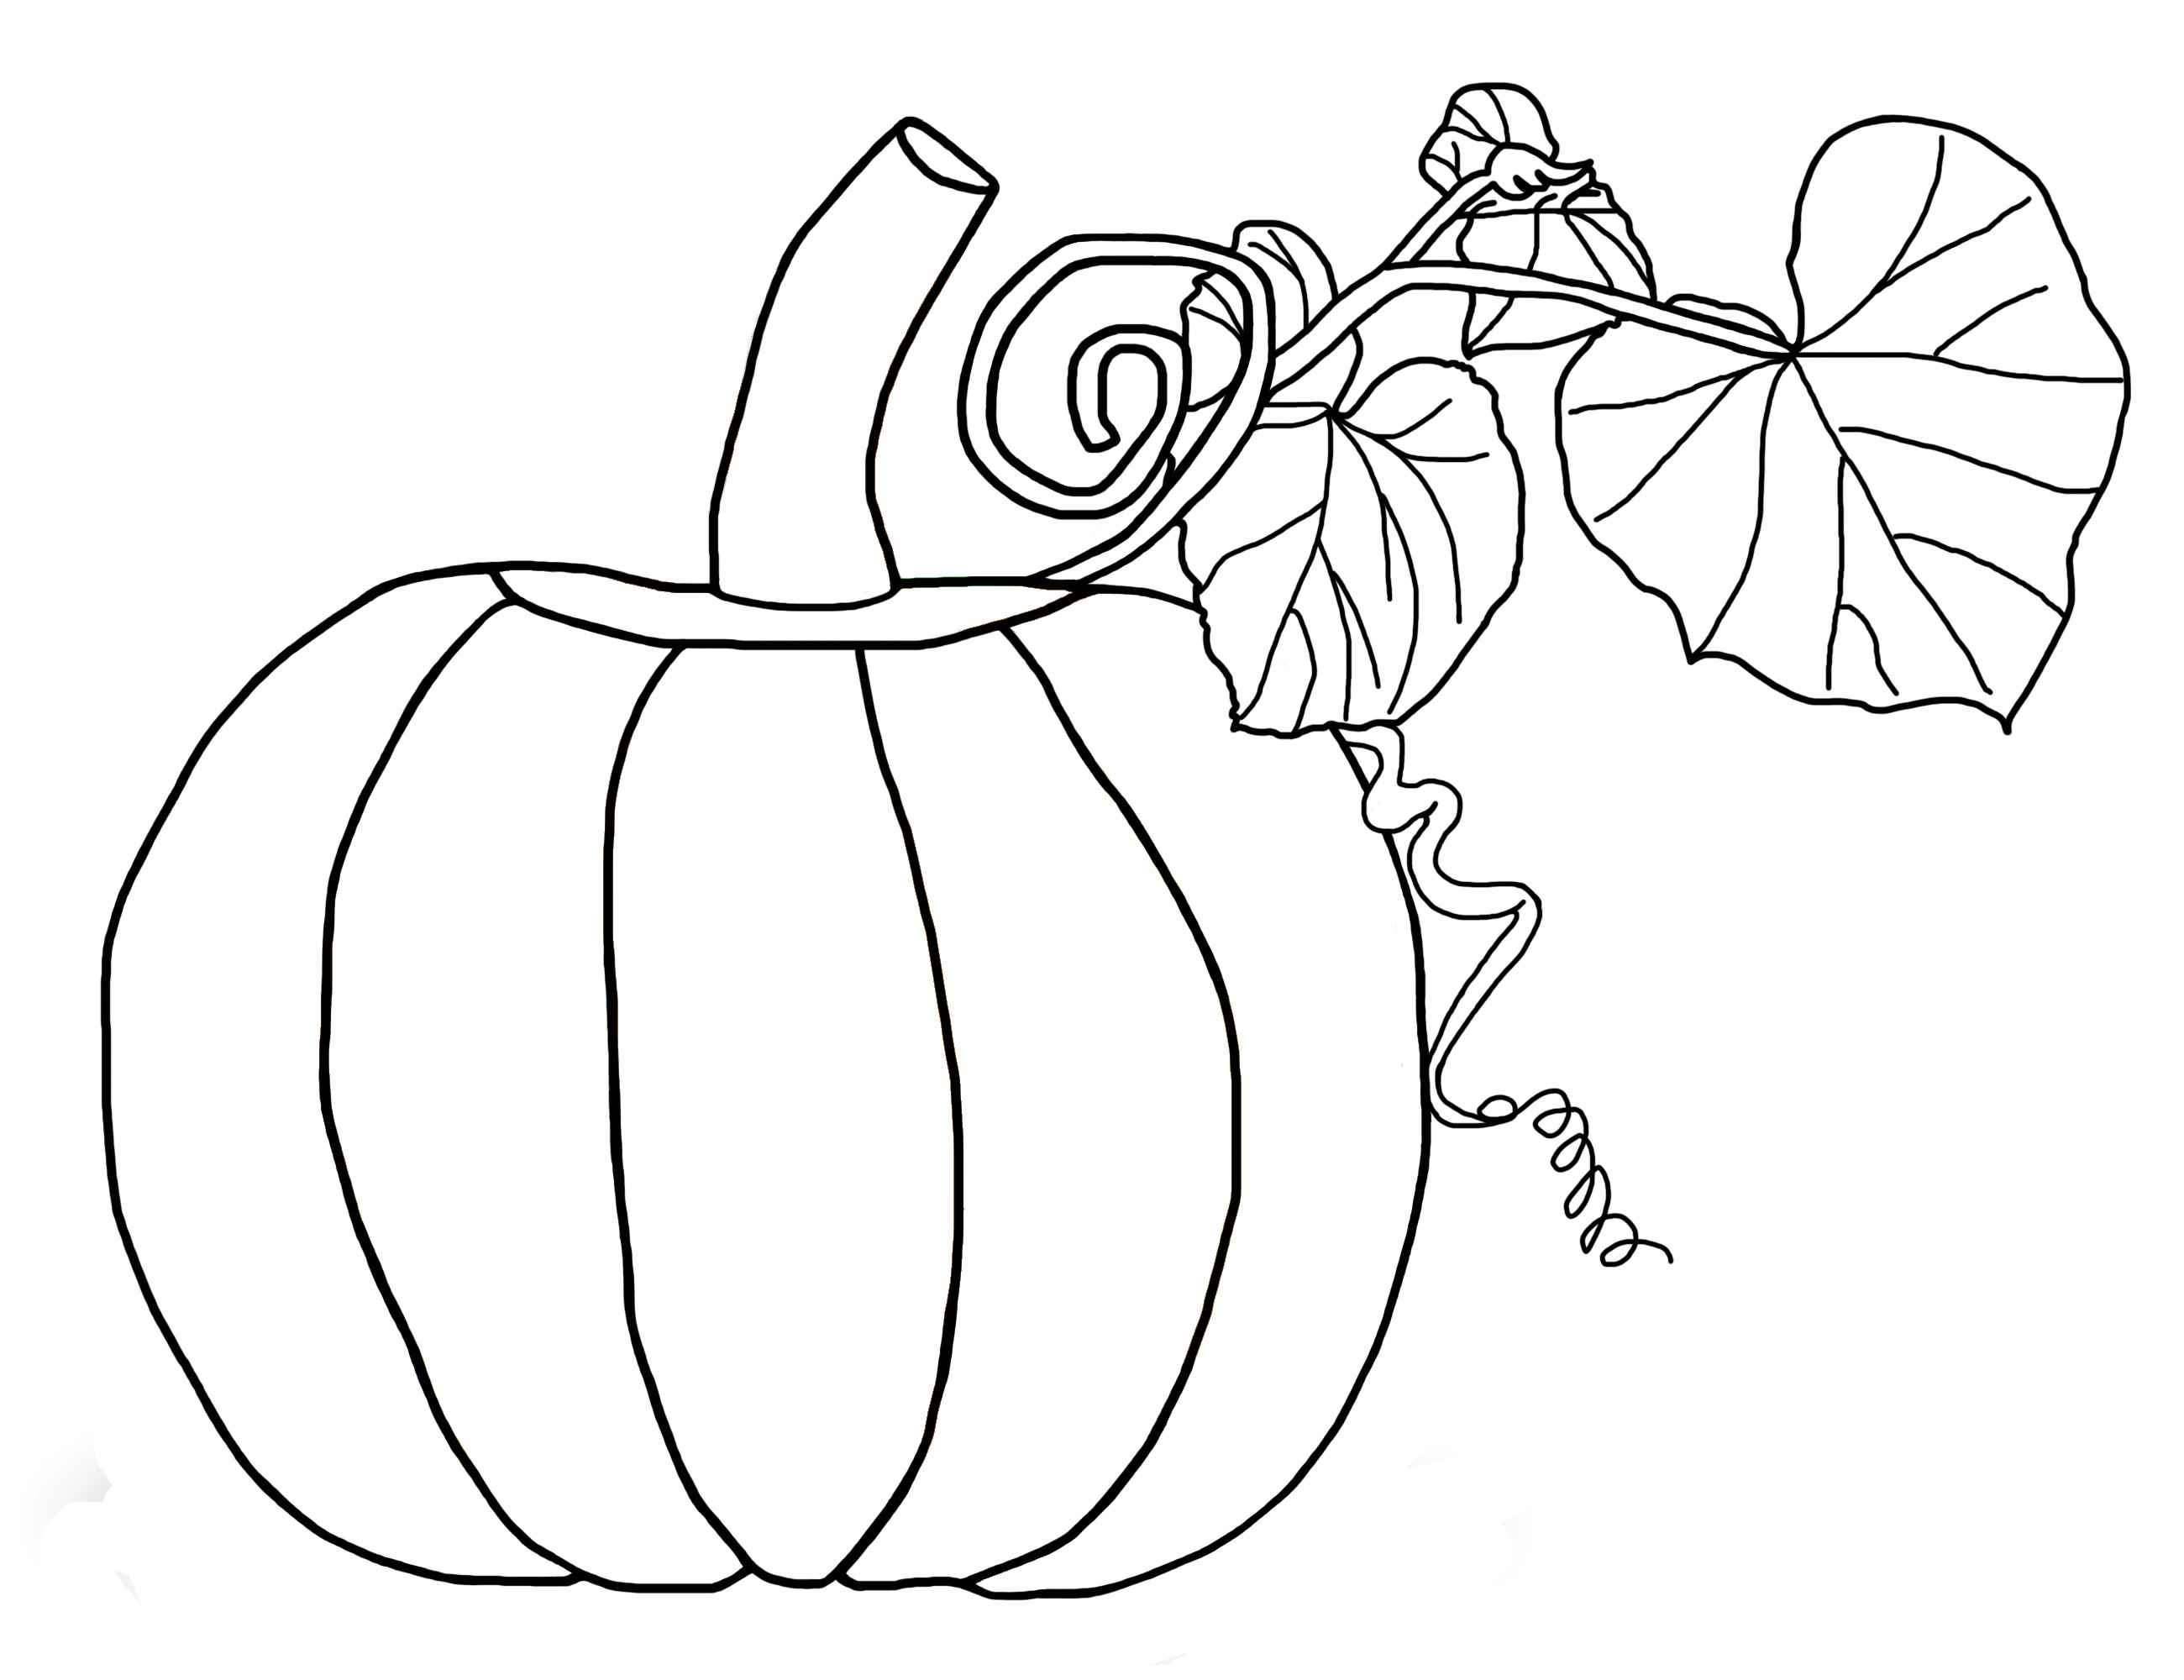 Pumpkin coloring pages from best coloring pages for kids